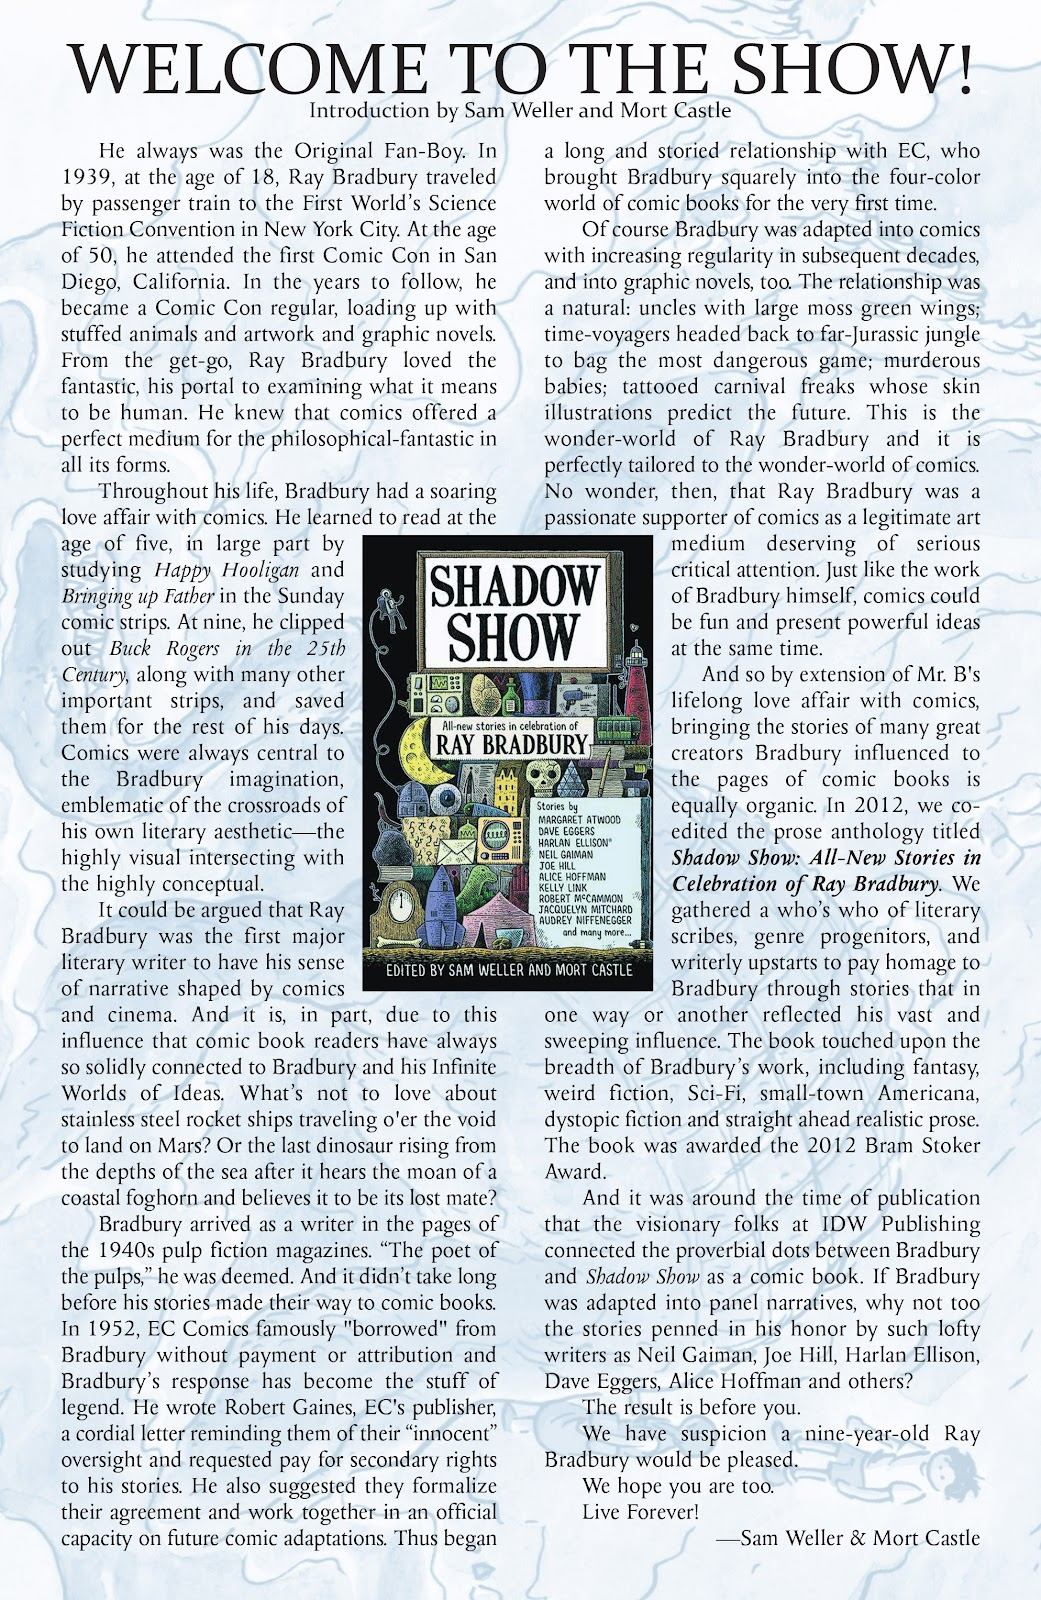 Read online Shadow Show: Stories in Celebration of Ray Bradbury comic -  Issue #1 - 3